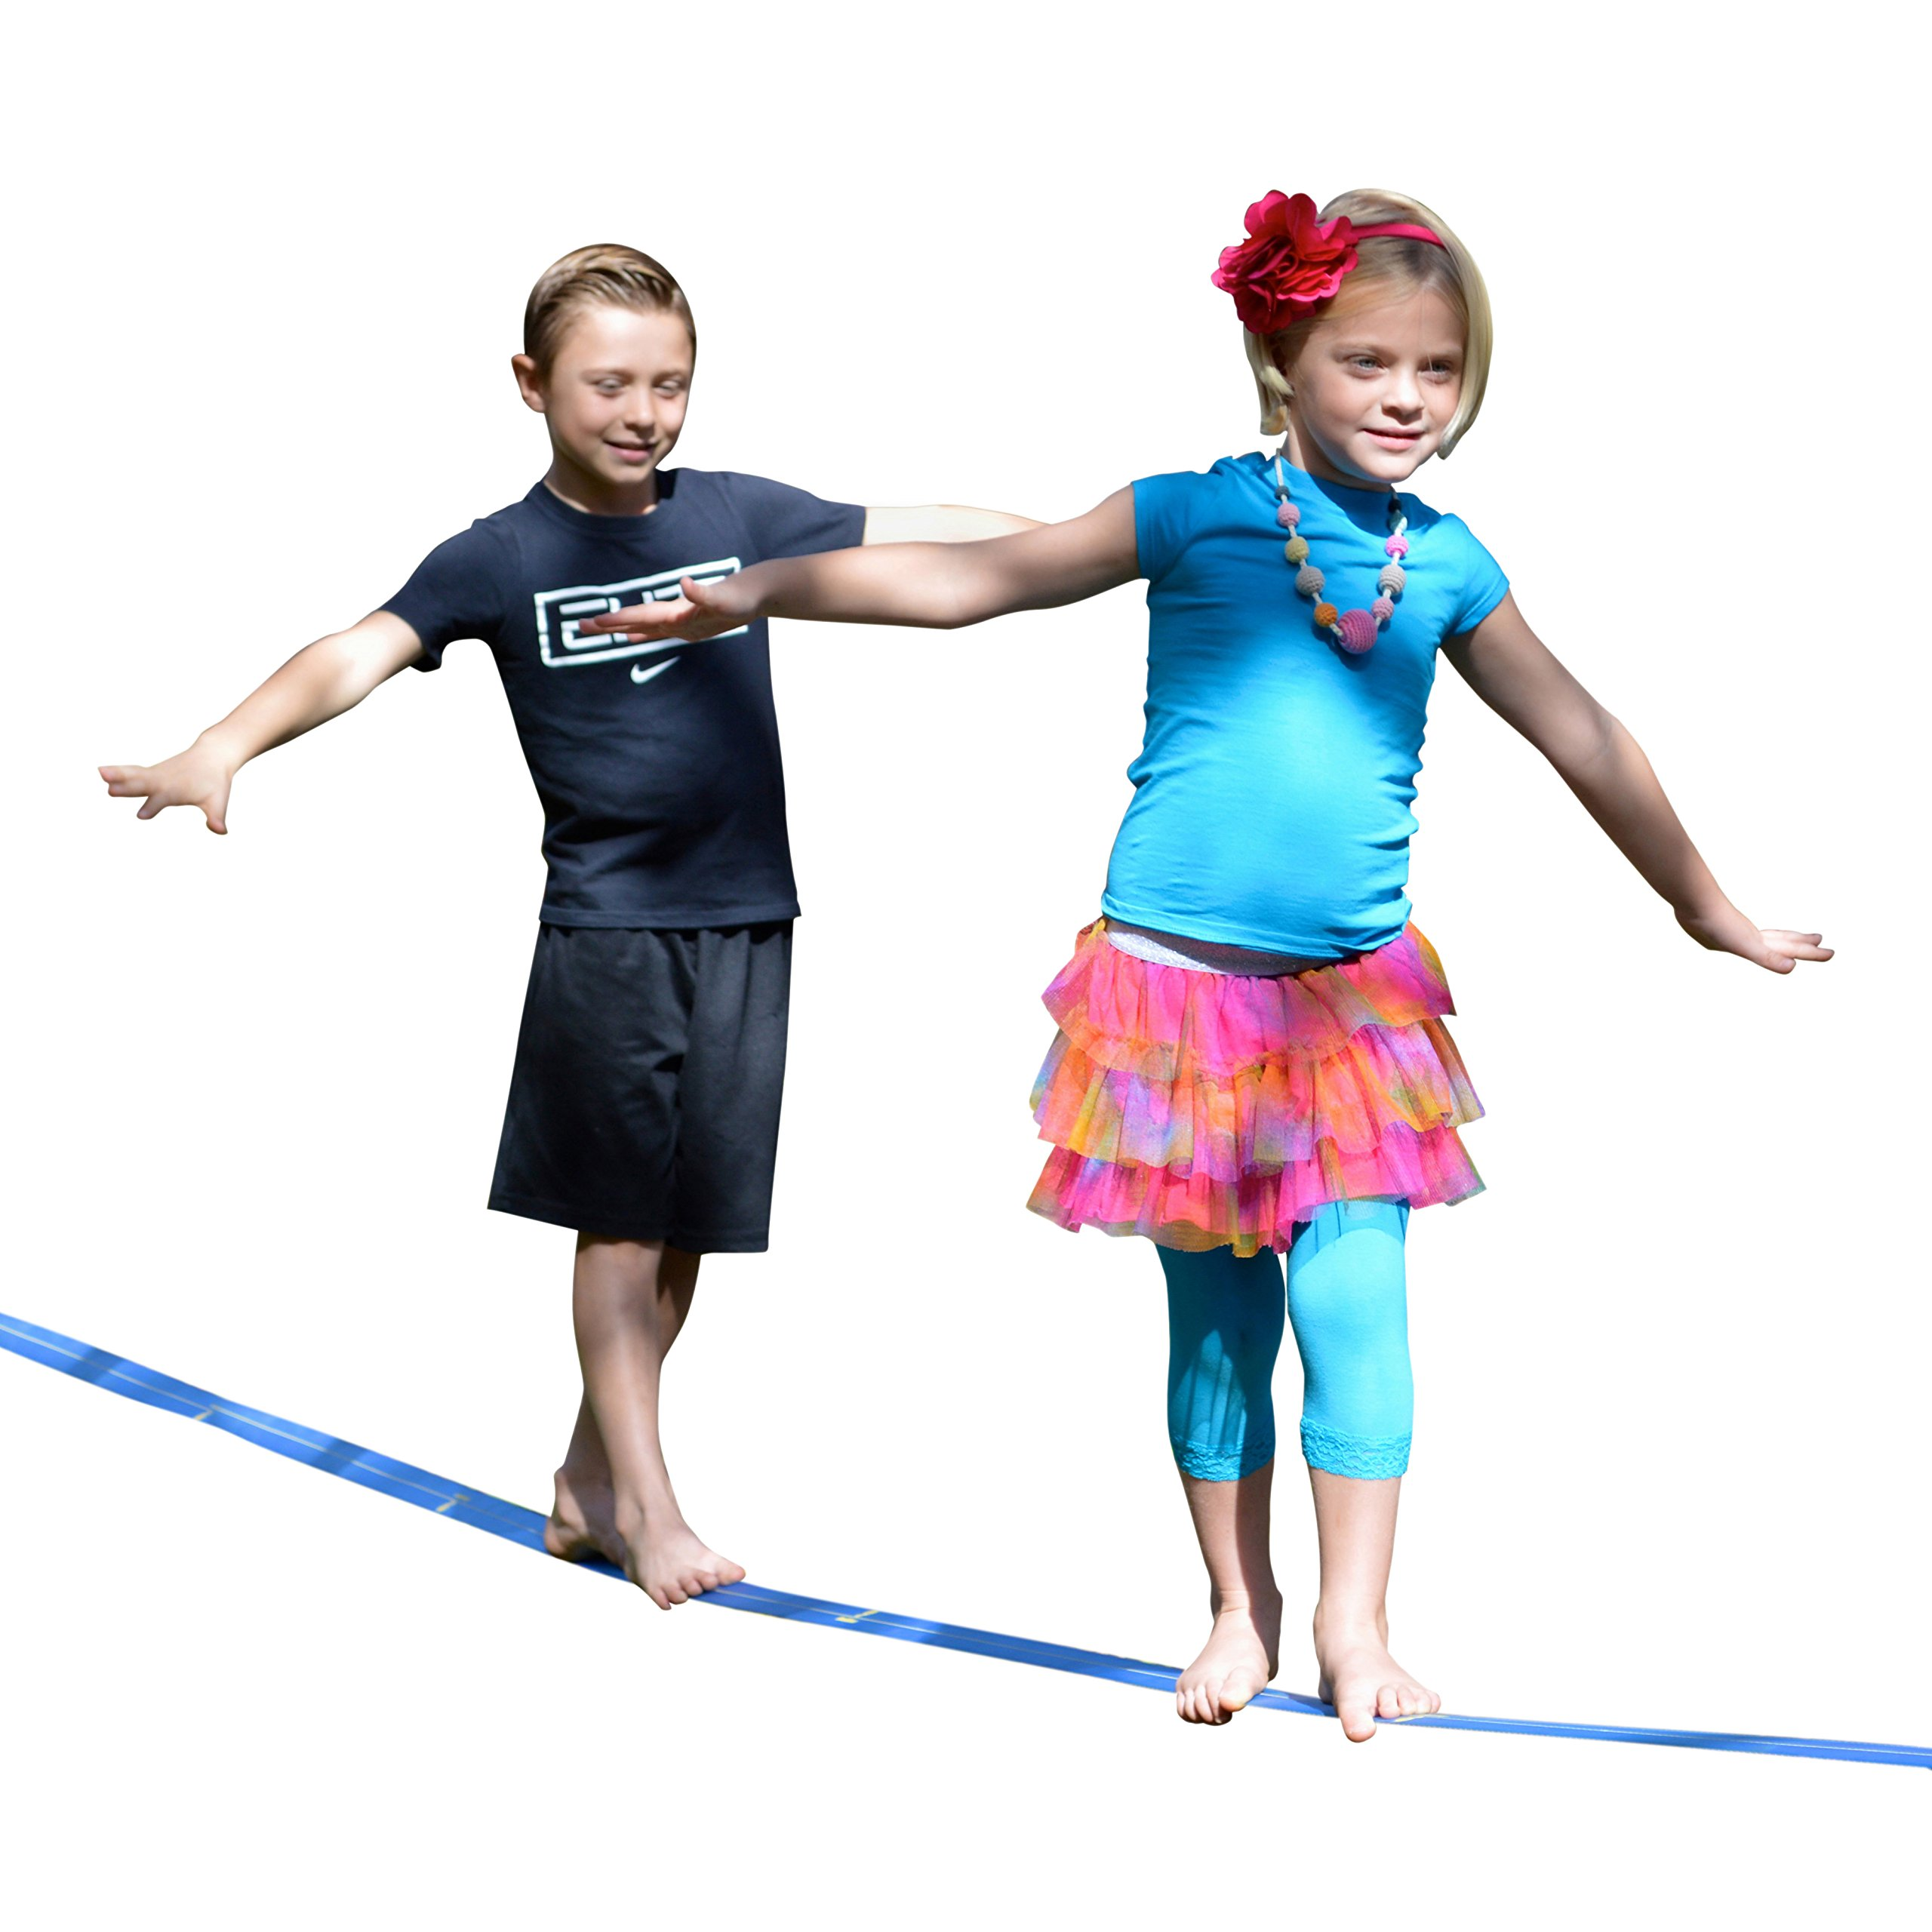 Beginner Slackline by ''Goodtimes'' - 48' Long and 2'' Wide Extra Soft Nylon Webbing W/ Durable Safety Ratchet + Easy Slacklines Set Up Guide. The Best Slacklining Gift Kit. Great for Kids Adults Teens